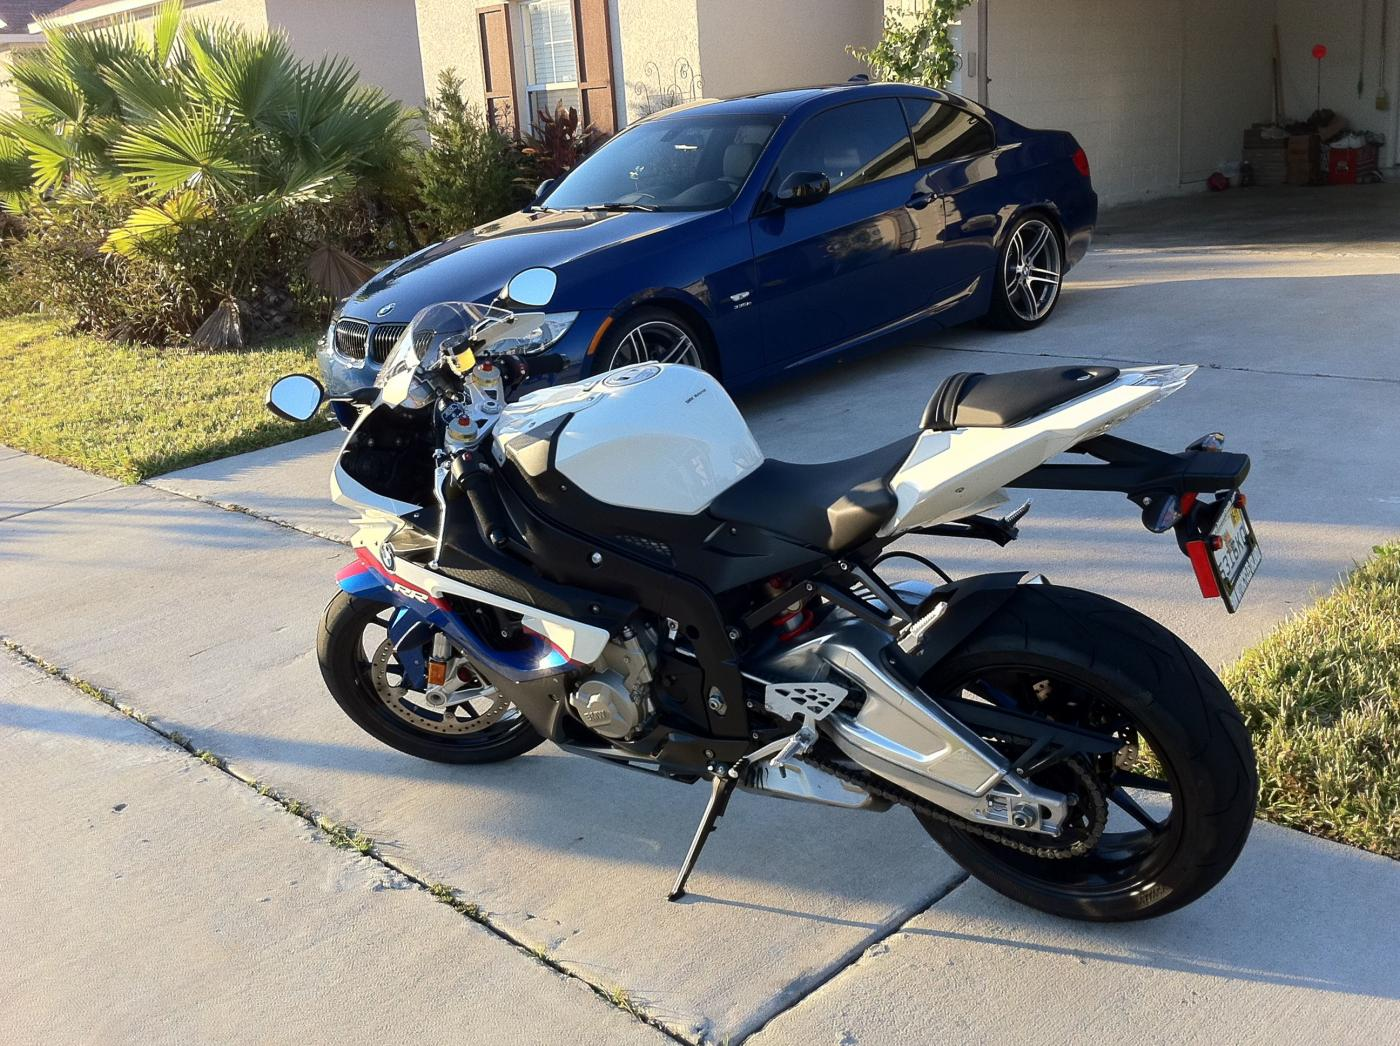 Bmw S1000rr For Sale >> Bmw S1000rr For Sale Great Price